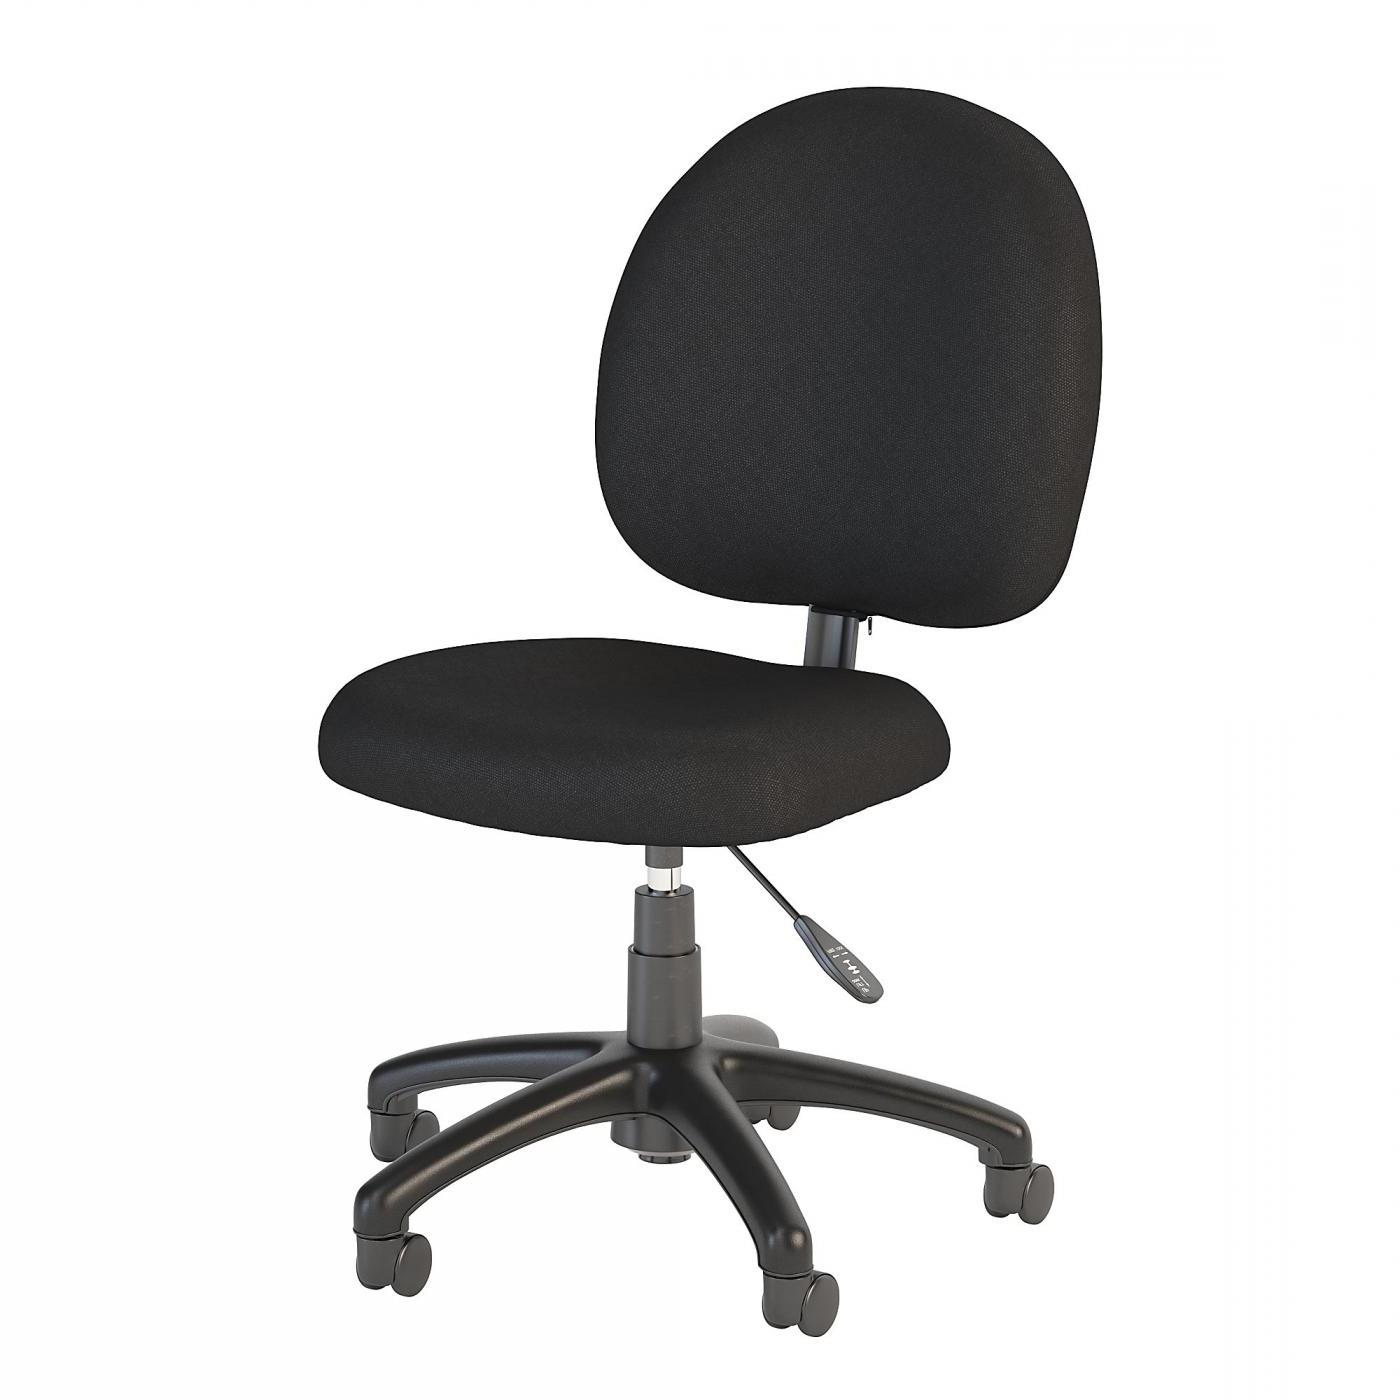 <font color=#c60><b>BUSH BUSINESS FURNITURE ACCORD TASK CHAIR. FREE SHIPPING</font></b> </font></b></font></b>